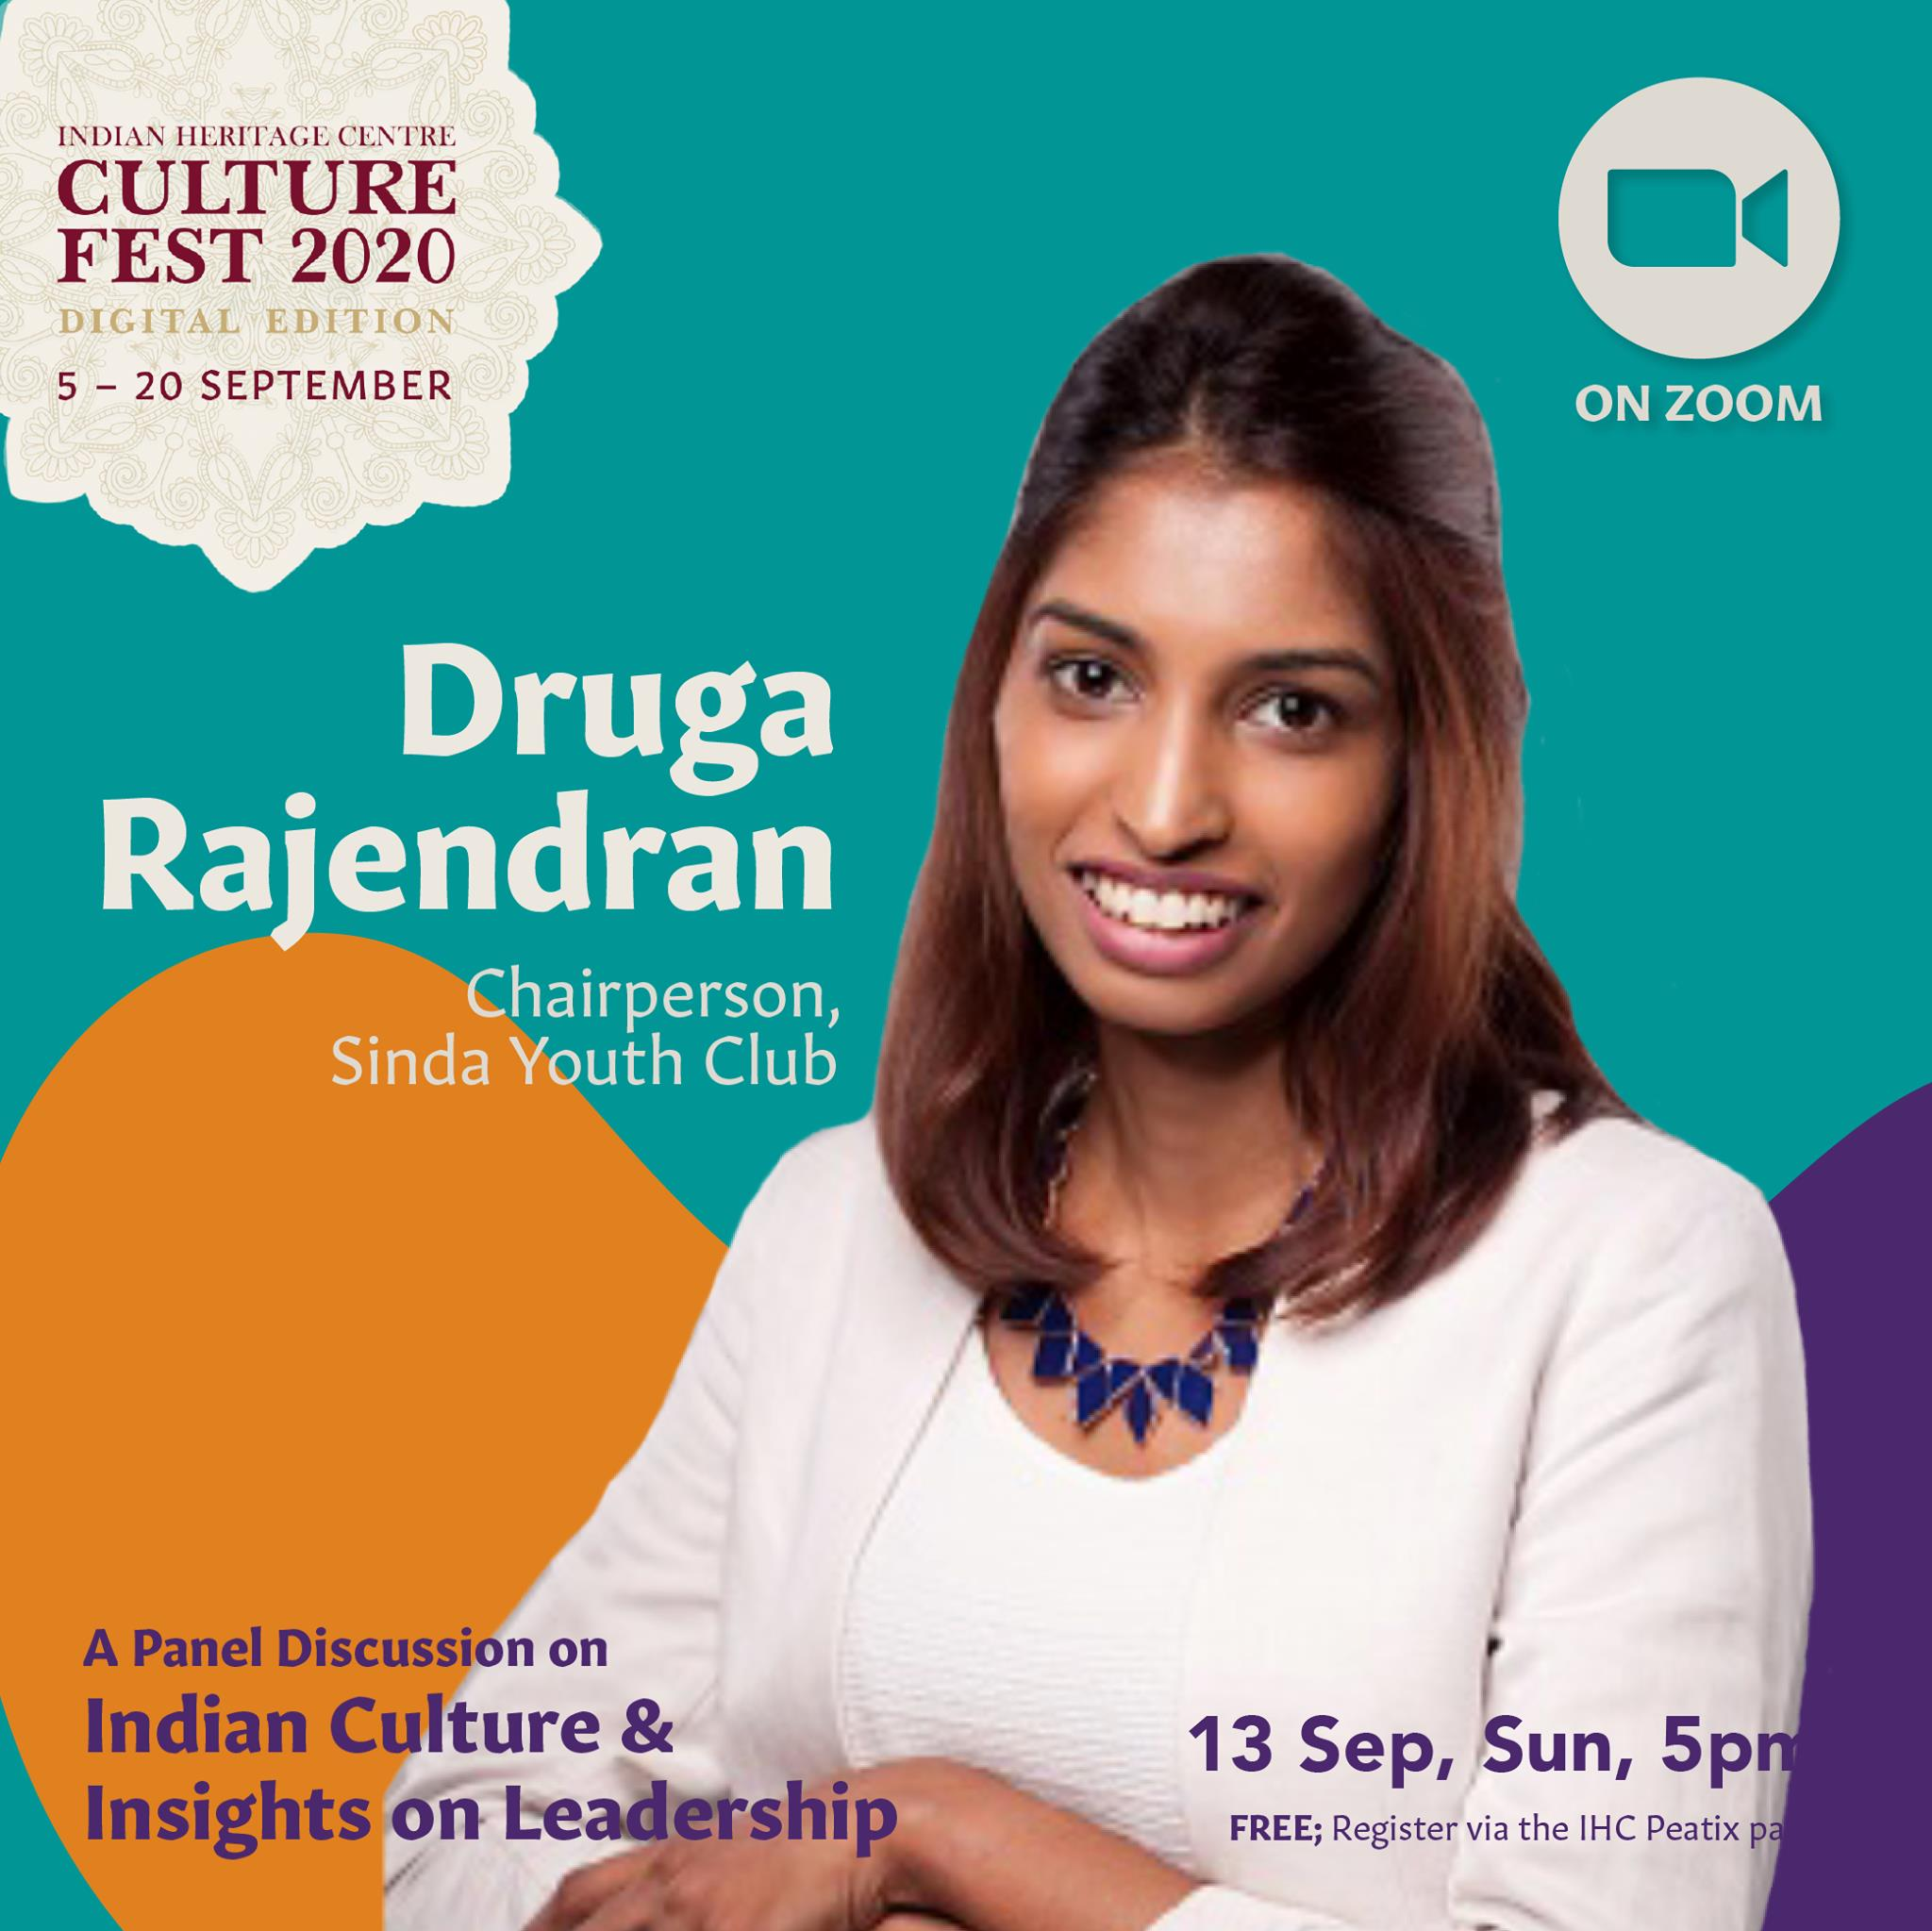 Druga Rajendran - is a full time youth volunteer & the youngest chairperson of the SINDA Youth Club. Photo Courtesy: IHC